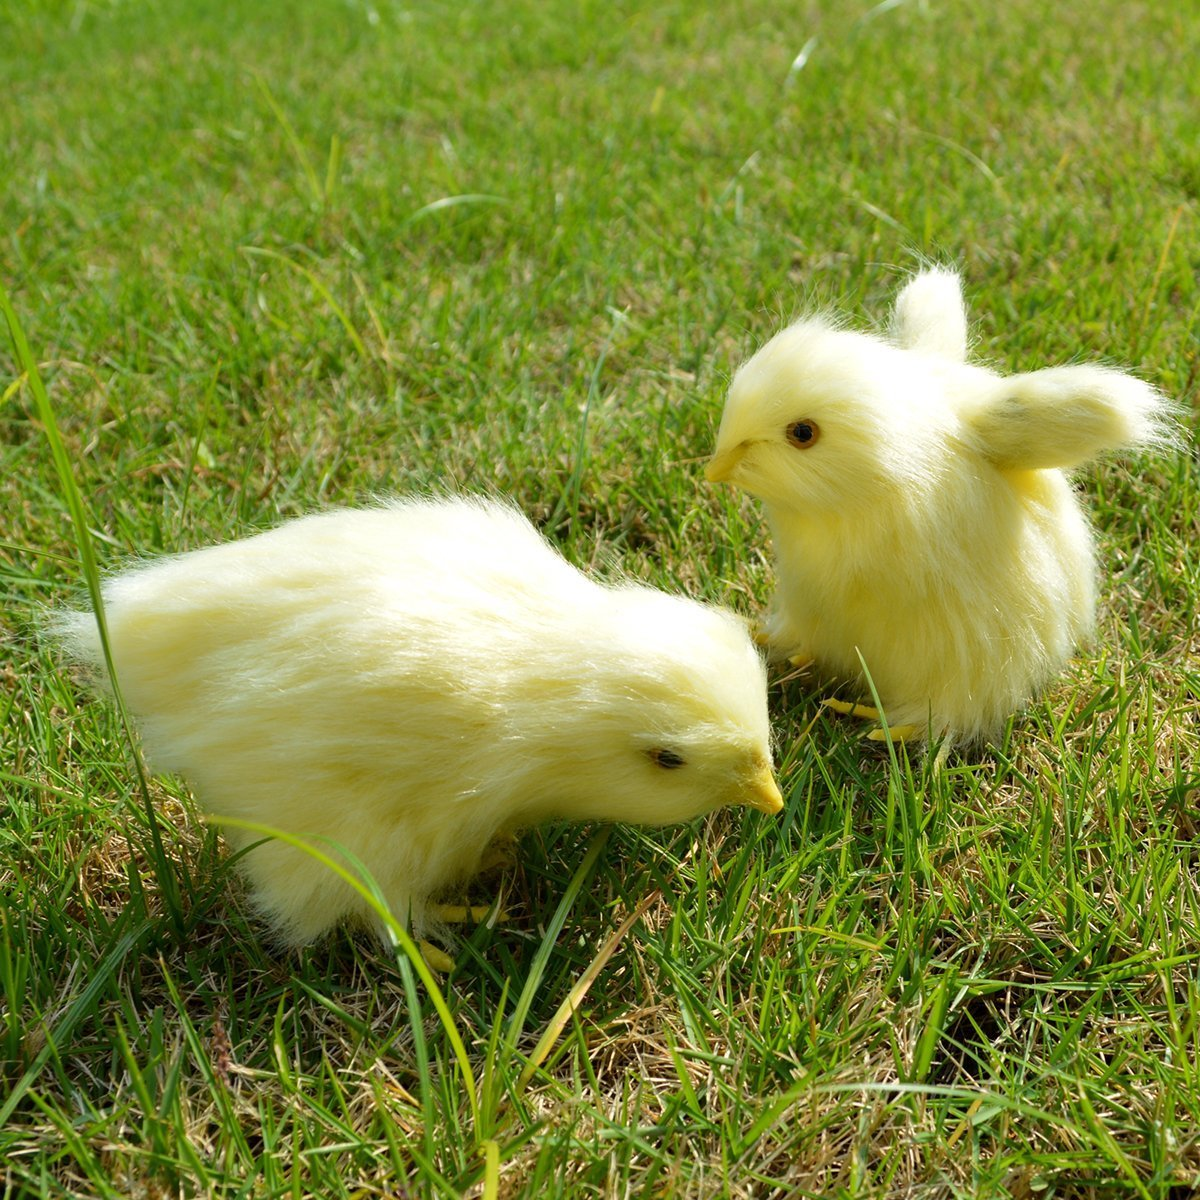 2 pcs Spring Easter Chick Decor Realistic Lifelike Yellow Baby Chick Plush Furry Animal Spring Decor Figurine Chicken Rabbit Fur Plush Animal Toy Easter Holiday Decoration (Eating + Flying)